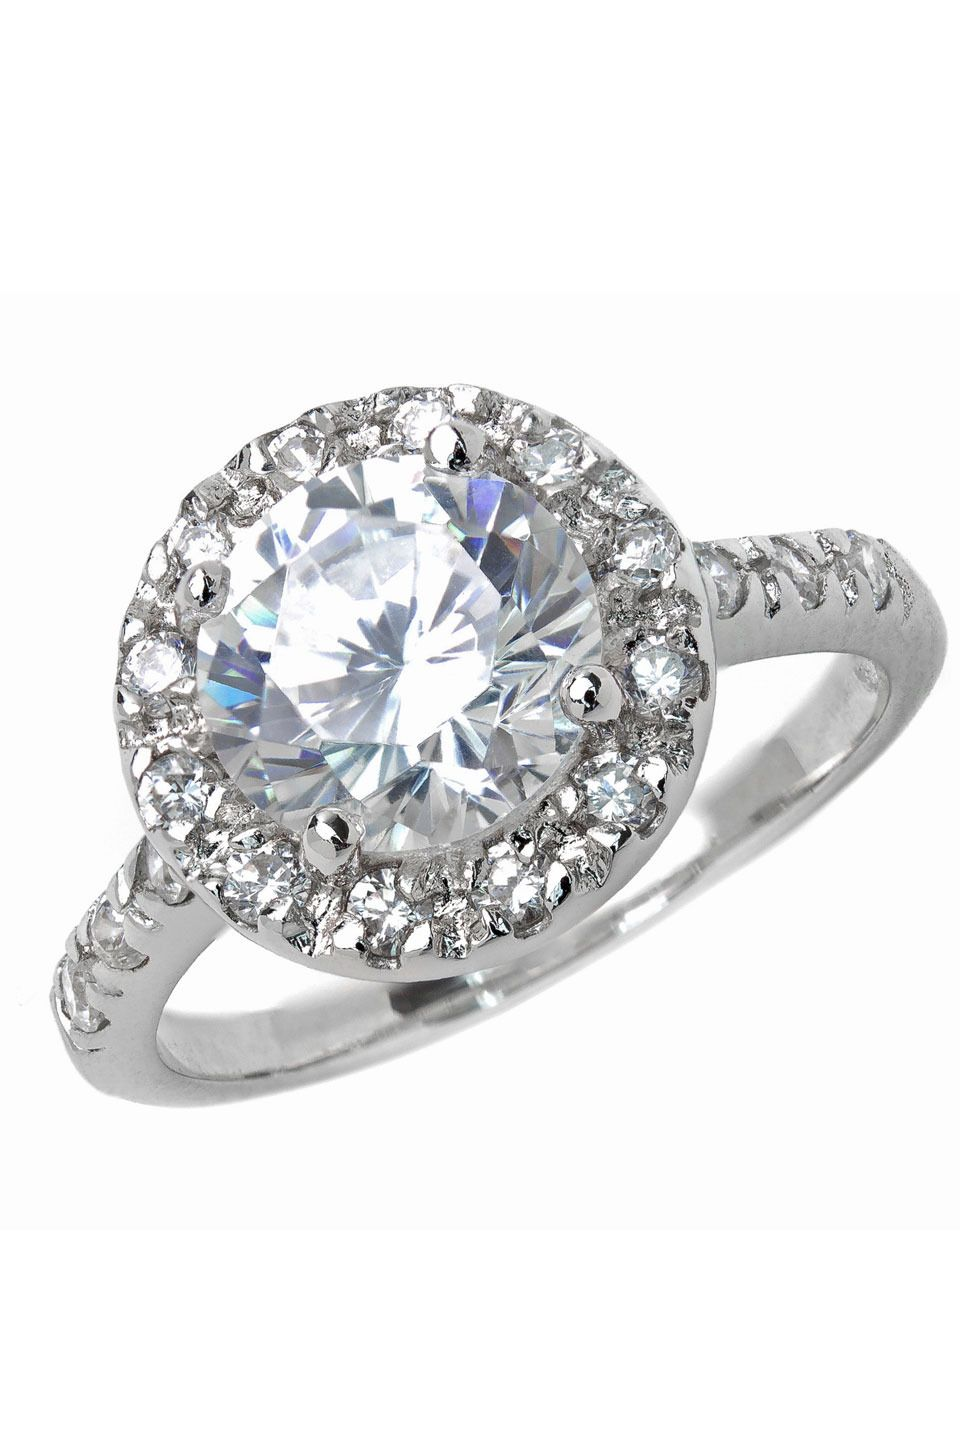 Sizable 1.7ct Diamond and 14K White Gold Engagement Ring. Looks like ...